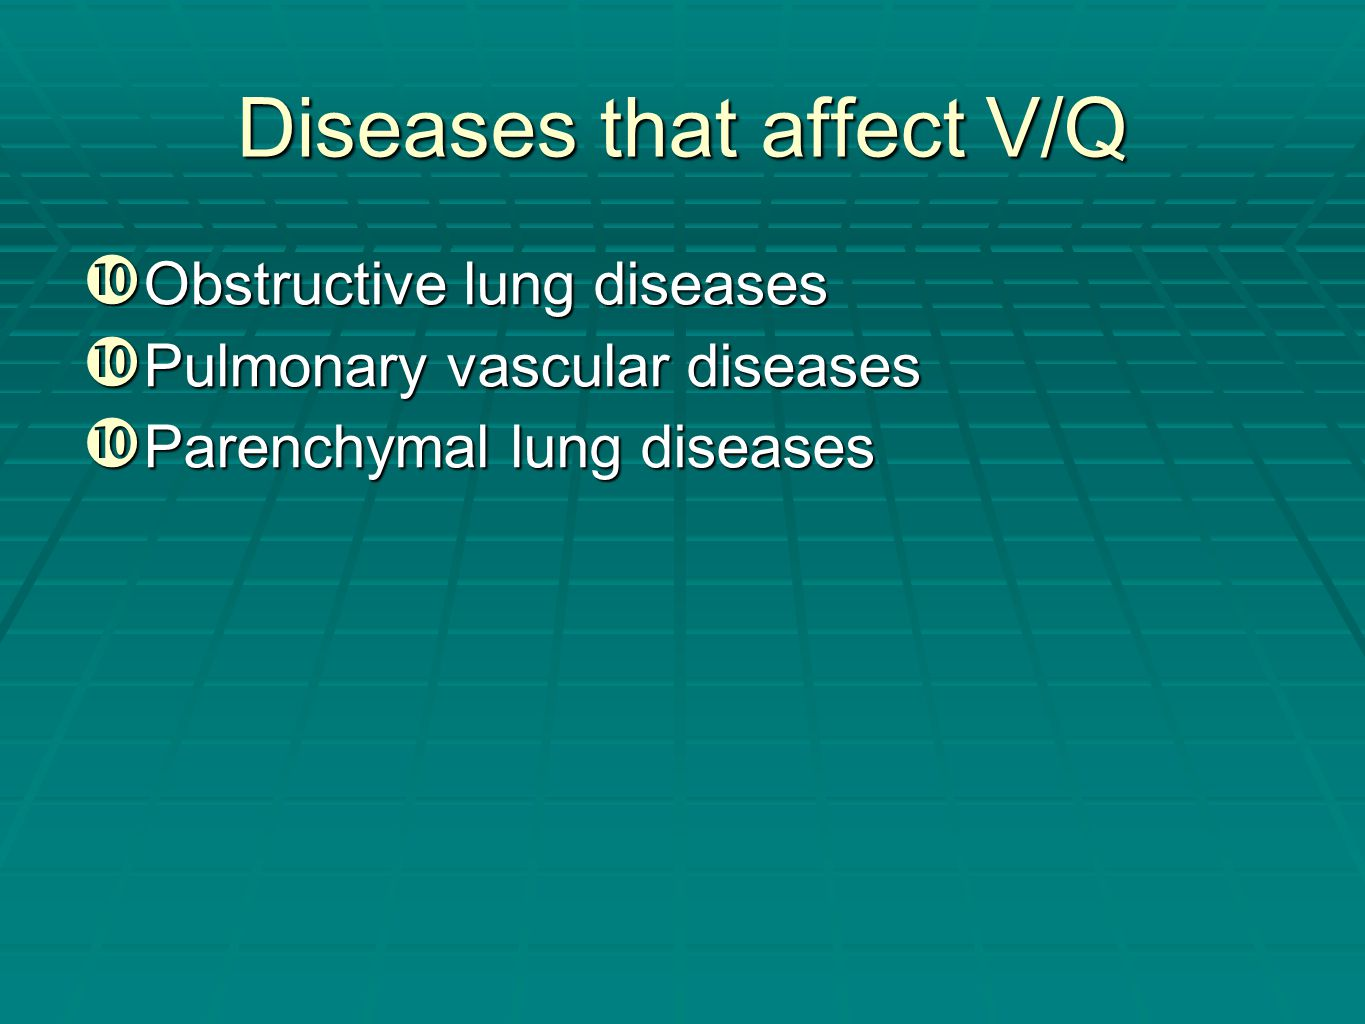 Diseases that affect V/Q